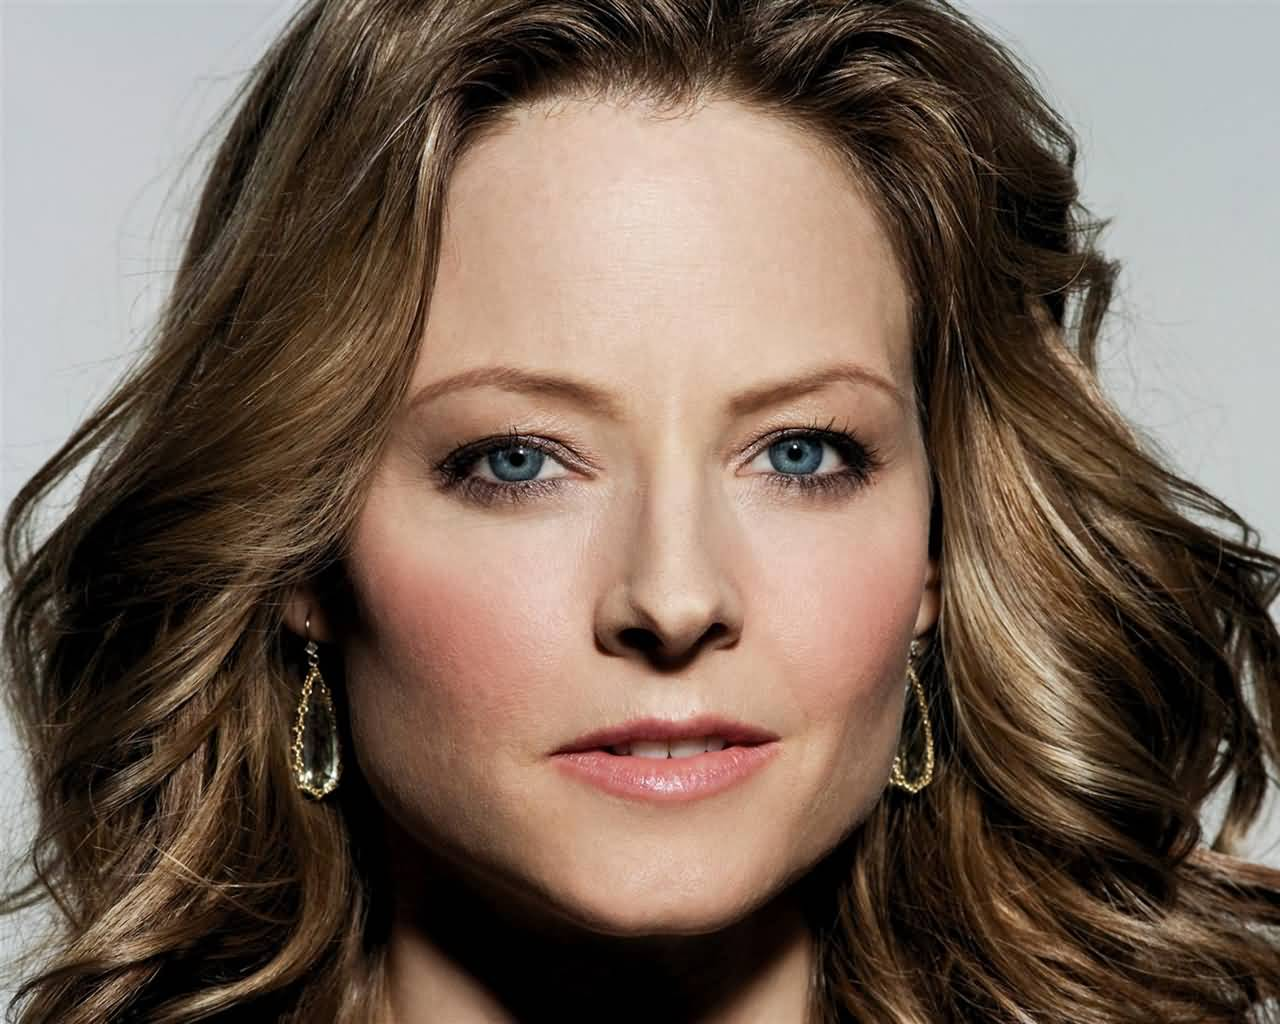 Actress Jodie Foster has been accused of battery. A police report that dates ...